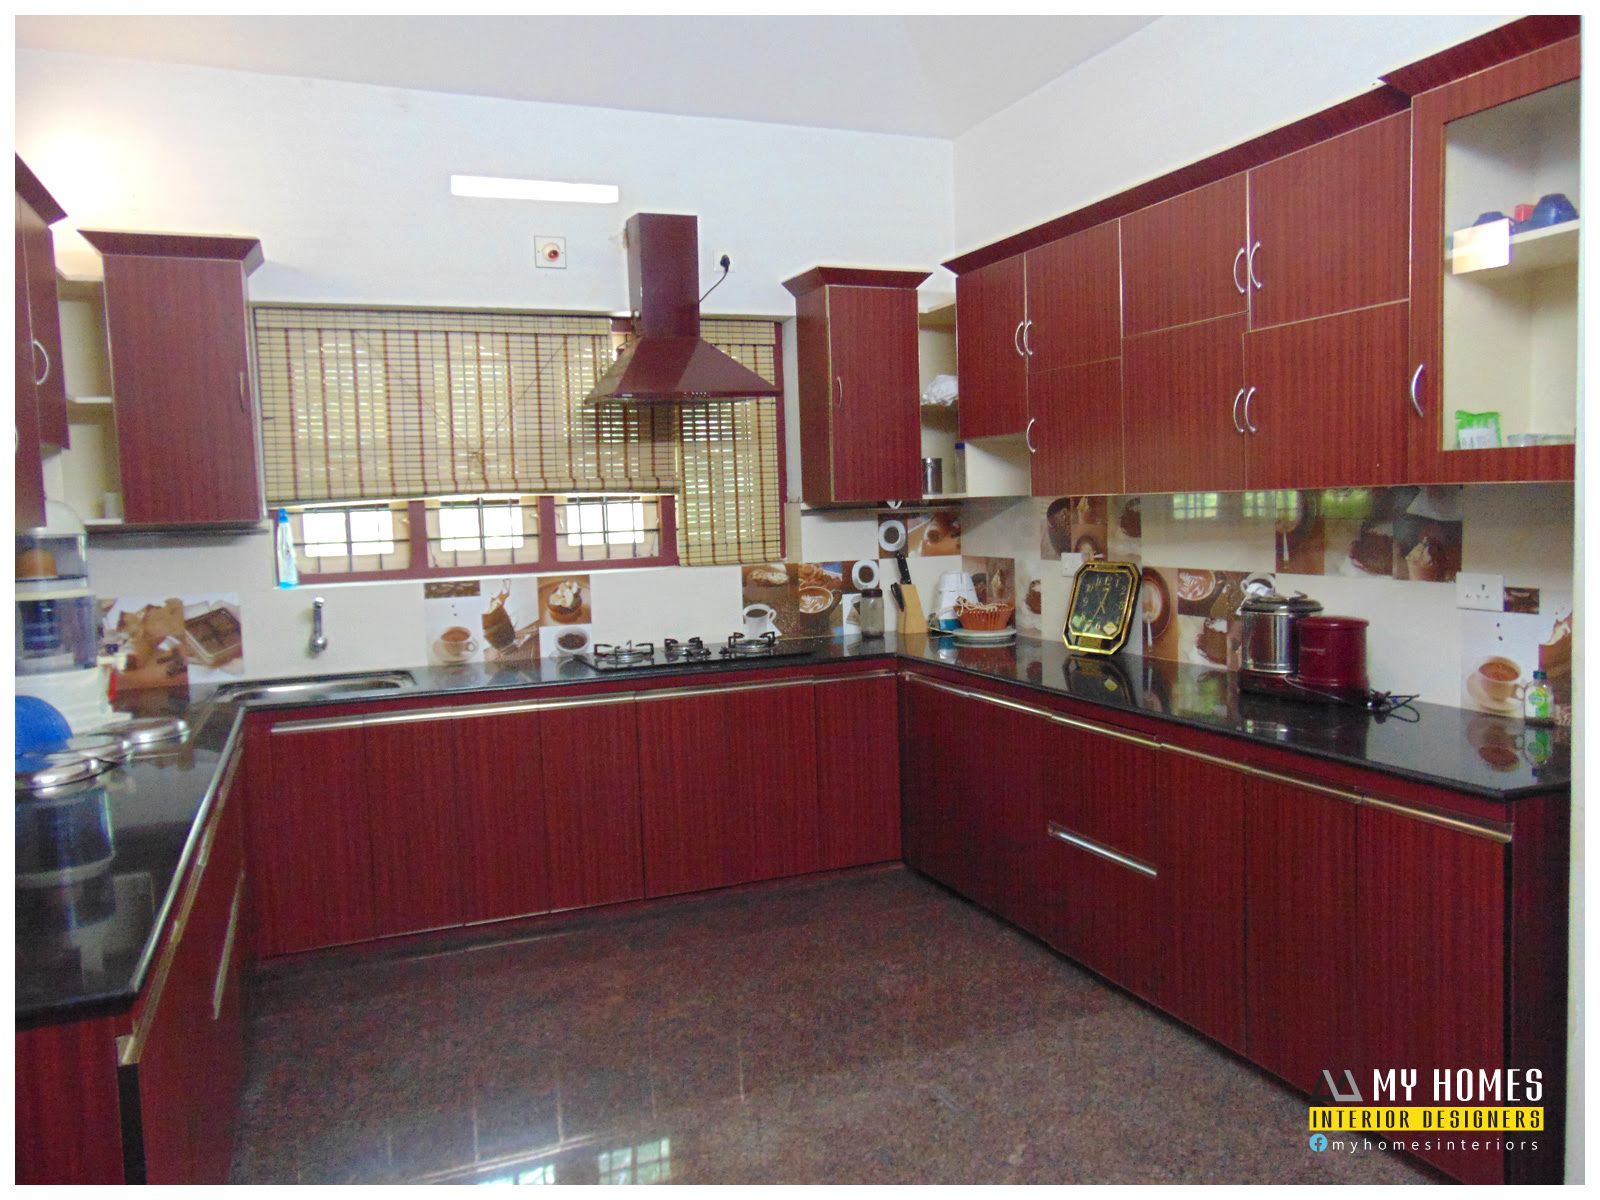 Top kitchen design kerala from Interior designers thrissur ...